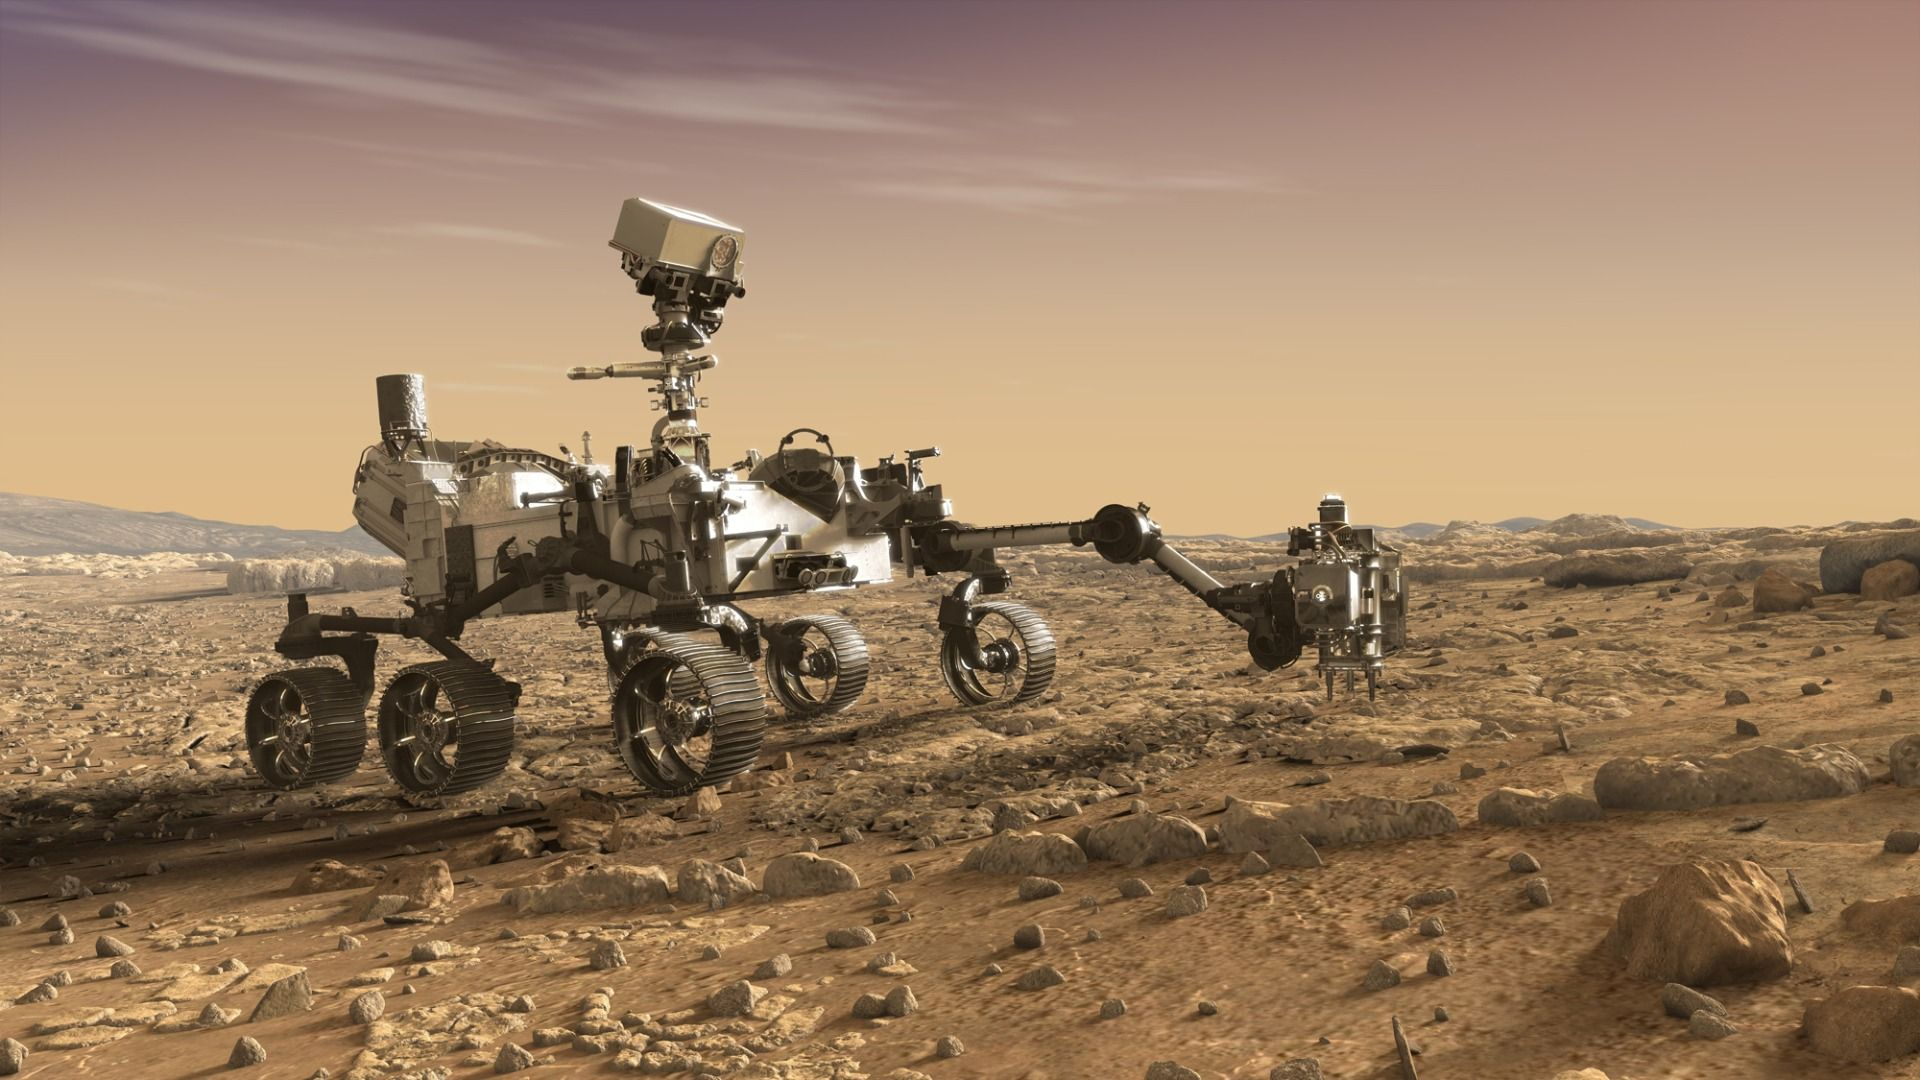 image of the mars rover on the surface of planet mars